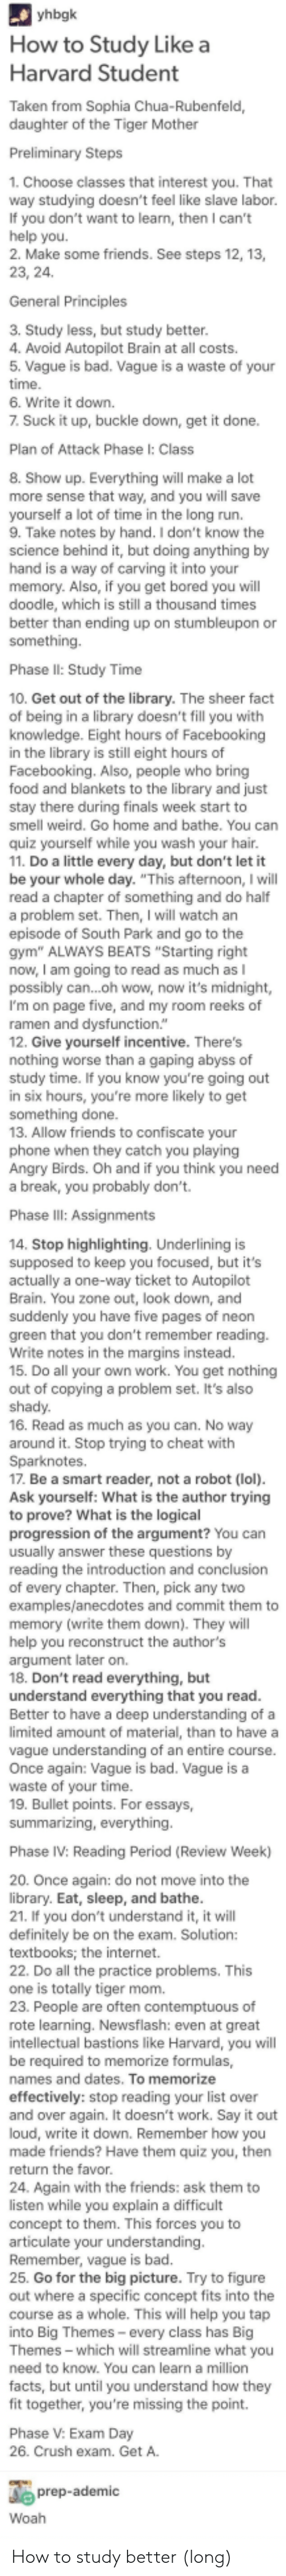 "Angry Birds, Bad, and Bored: How to Study Likea  Harvard Student  Taken from Sophia Chua-Rubenfeld,  daughter of the Tiger Mother  1. Choose classes that interest you. That  way studying doesn't feel like slave labor.  If you don't want to learn, then I can't  2. Make some friends. See steps 12, 13,  General Principles  3. Study less, but study better  4. Avoid Autopilot Brain at all costs.  5. Vague is bad. Vague is a waste of your  time  6. Write it down.  7 Suck it up, buckle down, get it done.  Plan of Attack Phase I: Class  8. Show up. Everything will make a lot  more sense that way, and you will save  yourself a lot of time in the long run.  9. Take notes by hand. I don't know the  science behind it, but doing anything by  hand is a way of carving it into your  memory. Also, if you get bored you will  doodle, which is still a thousand times  better than ending up on stumbleupon or  something.  Phase II: Study Time  10. Get out of the library. The sheer fact  of being in a library doesn't fill you with  knowledge. Eight hours of Facebooking  in the library is still eight hours of  Facebooking. Also, people who bring  food and blankets to the library and just  stay there during finals week start to  smell weird. Go home and bathe. You can  quiz yourself while you wash your hair  11. Do a little every day, but don't let it  be your whole day. ""This afternoon, I will  0  a problem set. Then, I will watch an  episode of South Park and go to the  gym"" ALWAYS BEATS ""Starting right  now, I am going to read as much as I  possibly can...oh wow, now it's midnight,  I'm on page five, and my room reeks of  ramen  12. Give yourself incentive. There's  function  worse  abyss  study time. If you know you're going out  in six hours, you're more likely to get  something done.  13. Allow friends to confiscate your  phone when they catch you playing  Angry Birds. Oh and if you think you need  a break, you probably don't.  Phase  14. Stop highlighting. Underlining is  supposed to keep you focused, but it's  actually a one-way ticket to Autopilot  Brain. You zone out, look down, and  suddenly you have five pages of neon  green that you don't remember reading  Write notes in the margins instead.  15. Do all your own work. You get nothing  out of copying a problem set. It's also  shady.  16. Read as much as you can. No way  around it. Stop trying to cheat with  Sparknotes.  17. Be a smart reader, not a robot (lol)  Ask yourself: What is the author trying  to prove? What is the logical  progression of the argument? You can  reading the introduction and conclusion  of every chapter. Then, pick any two  examples/anecdotes and commit them to  memory (write them down). They will  help you reconstruct the author's  argument later on.  18. Don't read everything, but  understand everything that you read  Better to have a deep understanding of a  limited amount of material, than to have a  vague understanding of an entire course.  Once again: Vague is bad. Vague is a  waste of your time  19. Bullet points. For essays,  Phase IV: Reading Period (Review Week)  20. Once again: do not move into the  library. Eat, sleep, and bathe  21. If you don't understand it, it will  definitely be on the exam. Solution  tex  22. Do all the practice problems. This  one is totally tiger mom  are  of  rote learning. Newsflash: even at great  intellectual bastions like Harvard, you will  be  names and dates. To memorize  effectively: stop reading your list over  and over again. It doesn't work. Say it out  loud, write it down. Remember how you  made friends? Have them quiz you, then  return the favor  24. Again with the friends: ask them to  listen while you explain a difficult  concept to them. This forces you to  articulate your understanding.  Remember, vague is bad.  25. Go for the big picture. Try to figure  out where a specific concept fits into the  course as a whole. This will help you tap  into Big Themes- every class has Big  Themes - which will streamline what you  need to know. You can learn a million  facts, but until you understand how they  fit together, you're missing the point.  V: Exam Day  26. Crush exam. Get A.  e prep-ademic How to study better (long)"